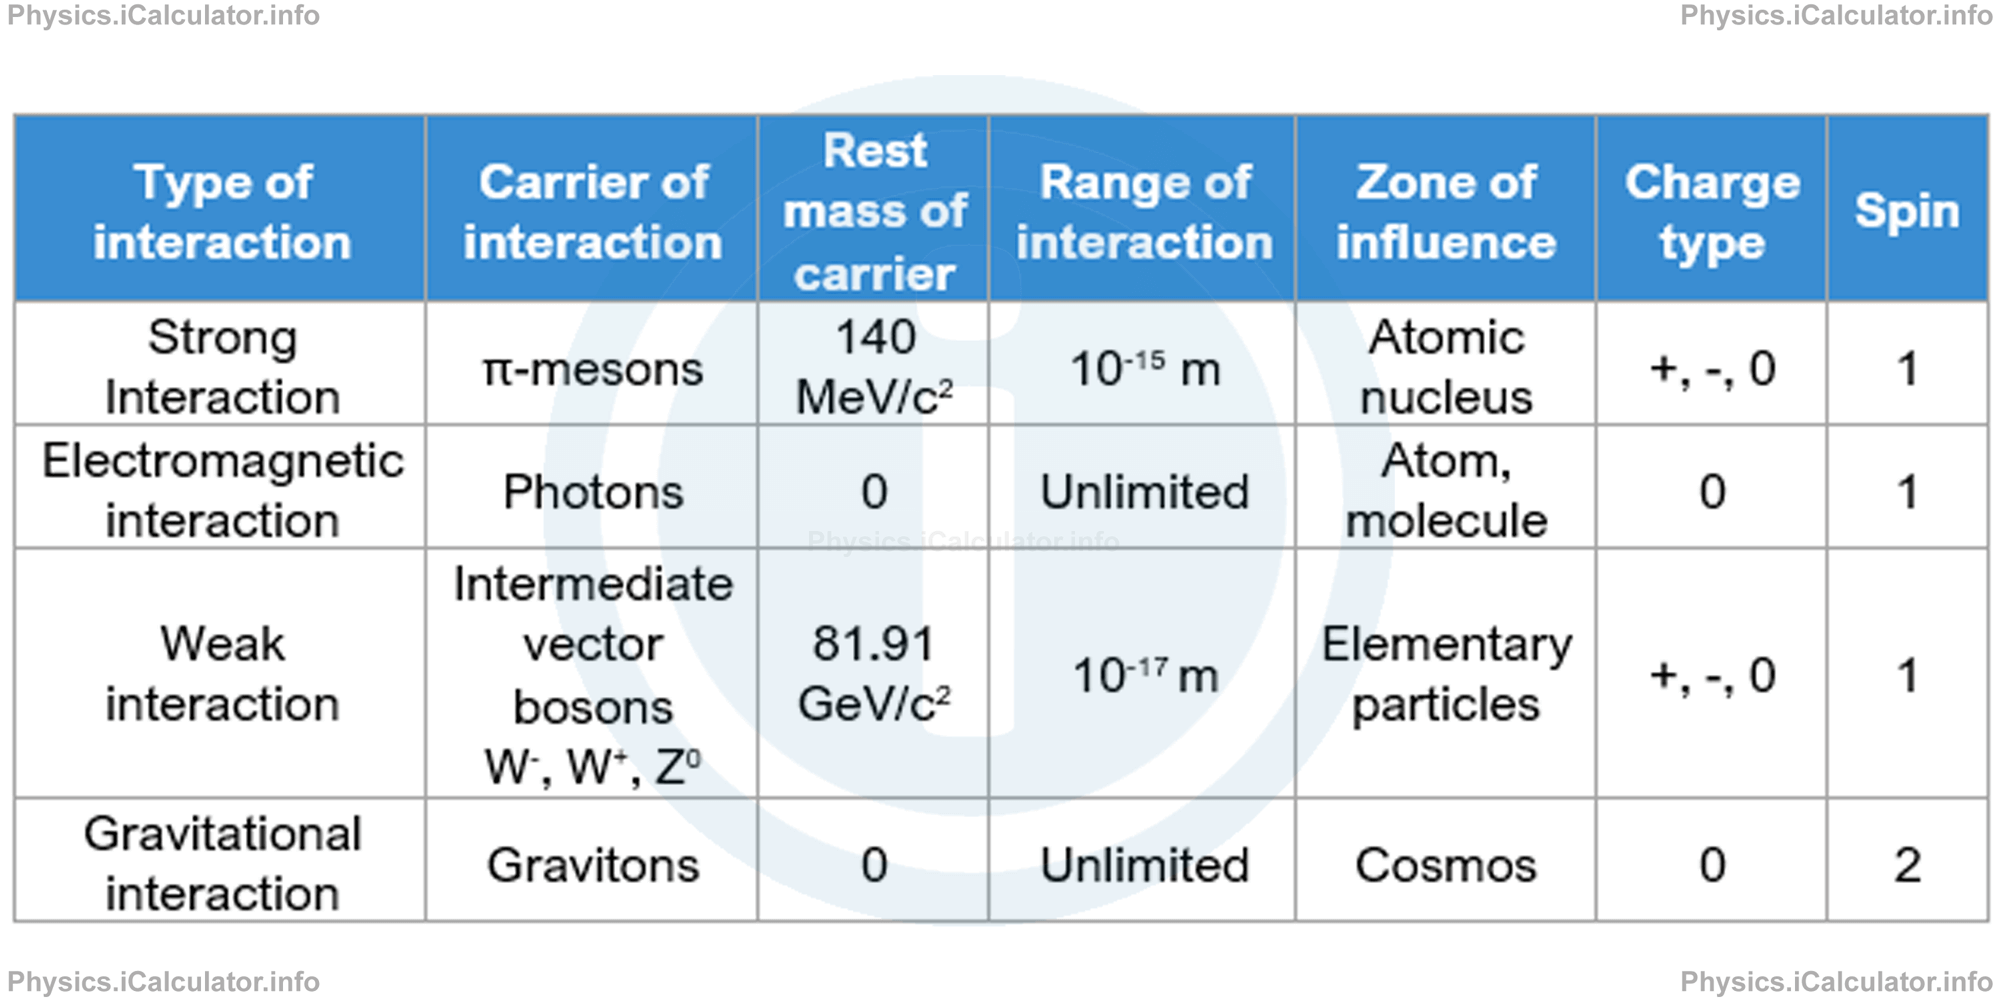 Physics Tutorials: This image provides visual information for the physics tutorial Classification of Elementary Particles. Quarks and Charm